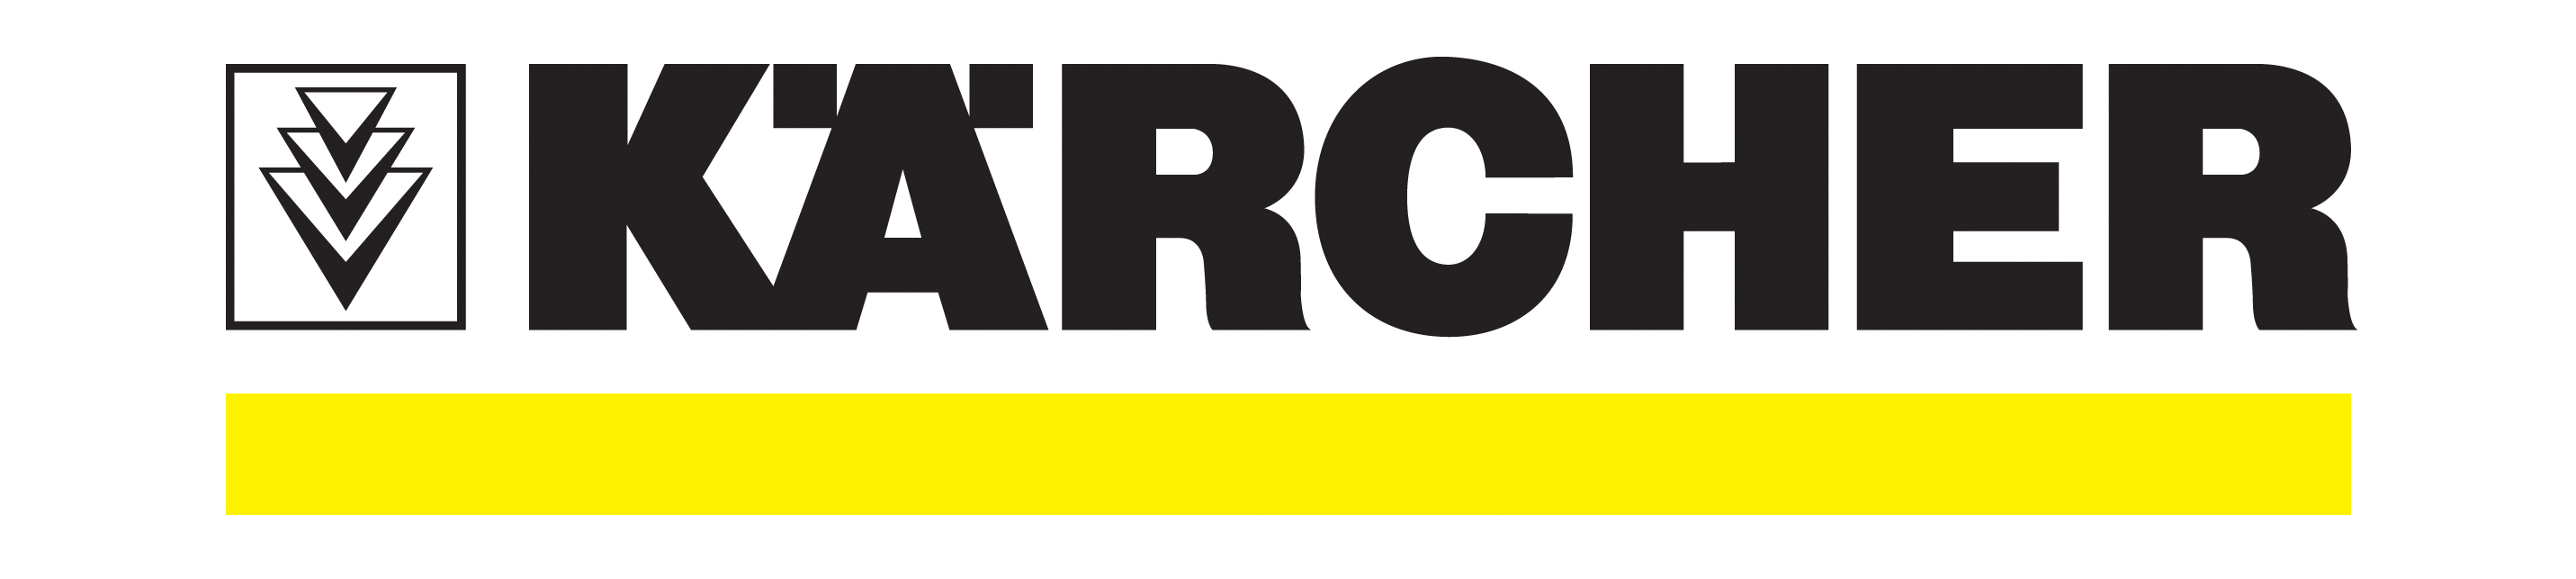 Karcher Logo Wallpaper